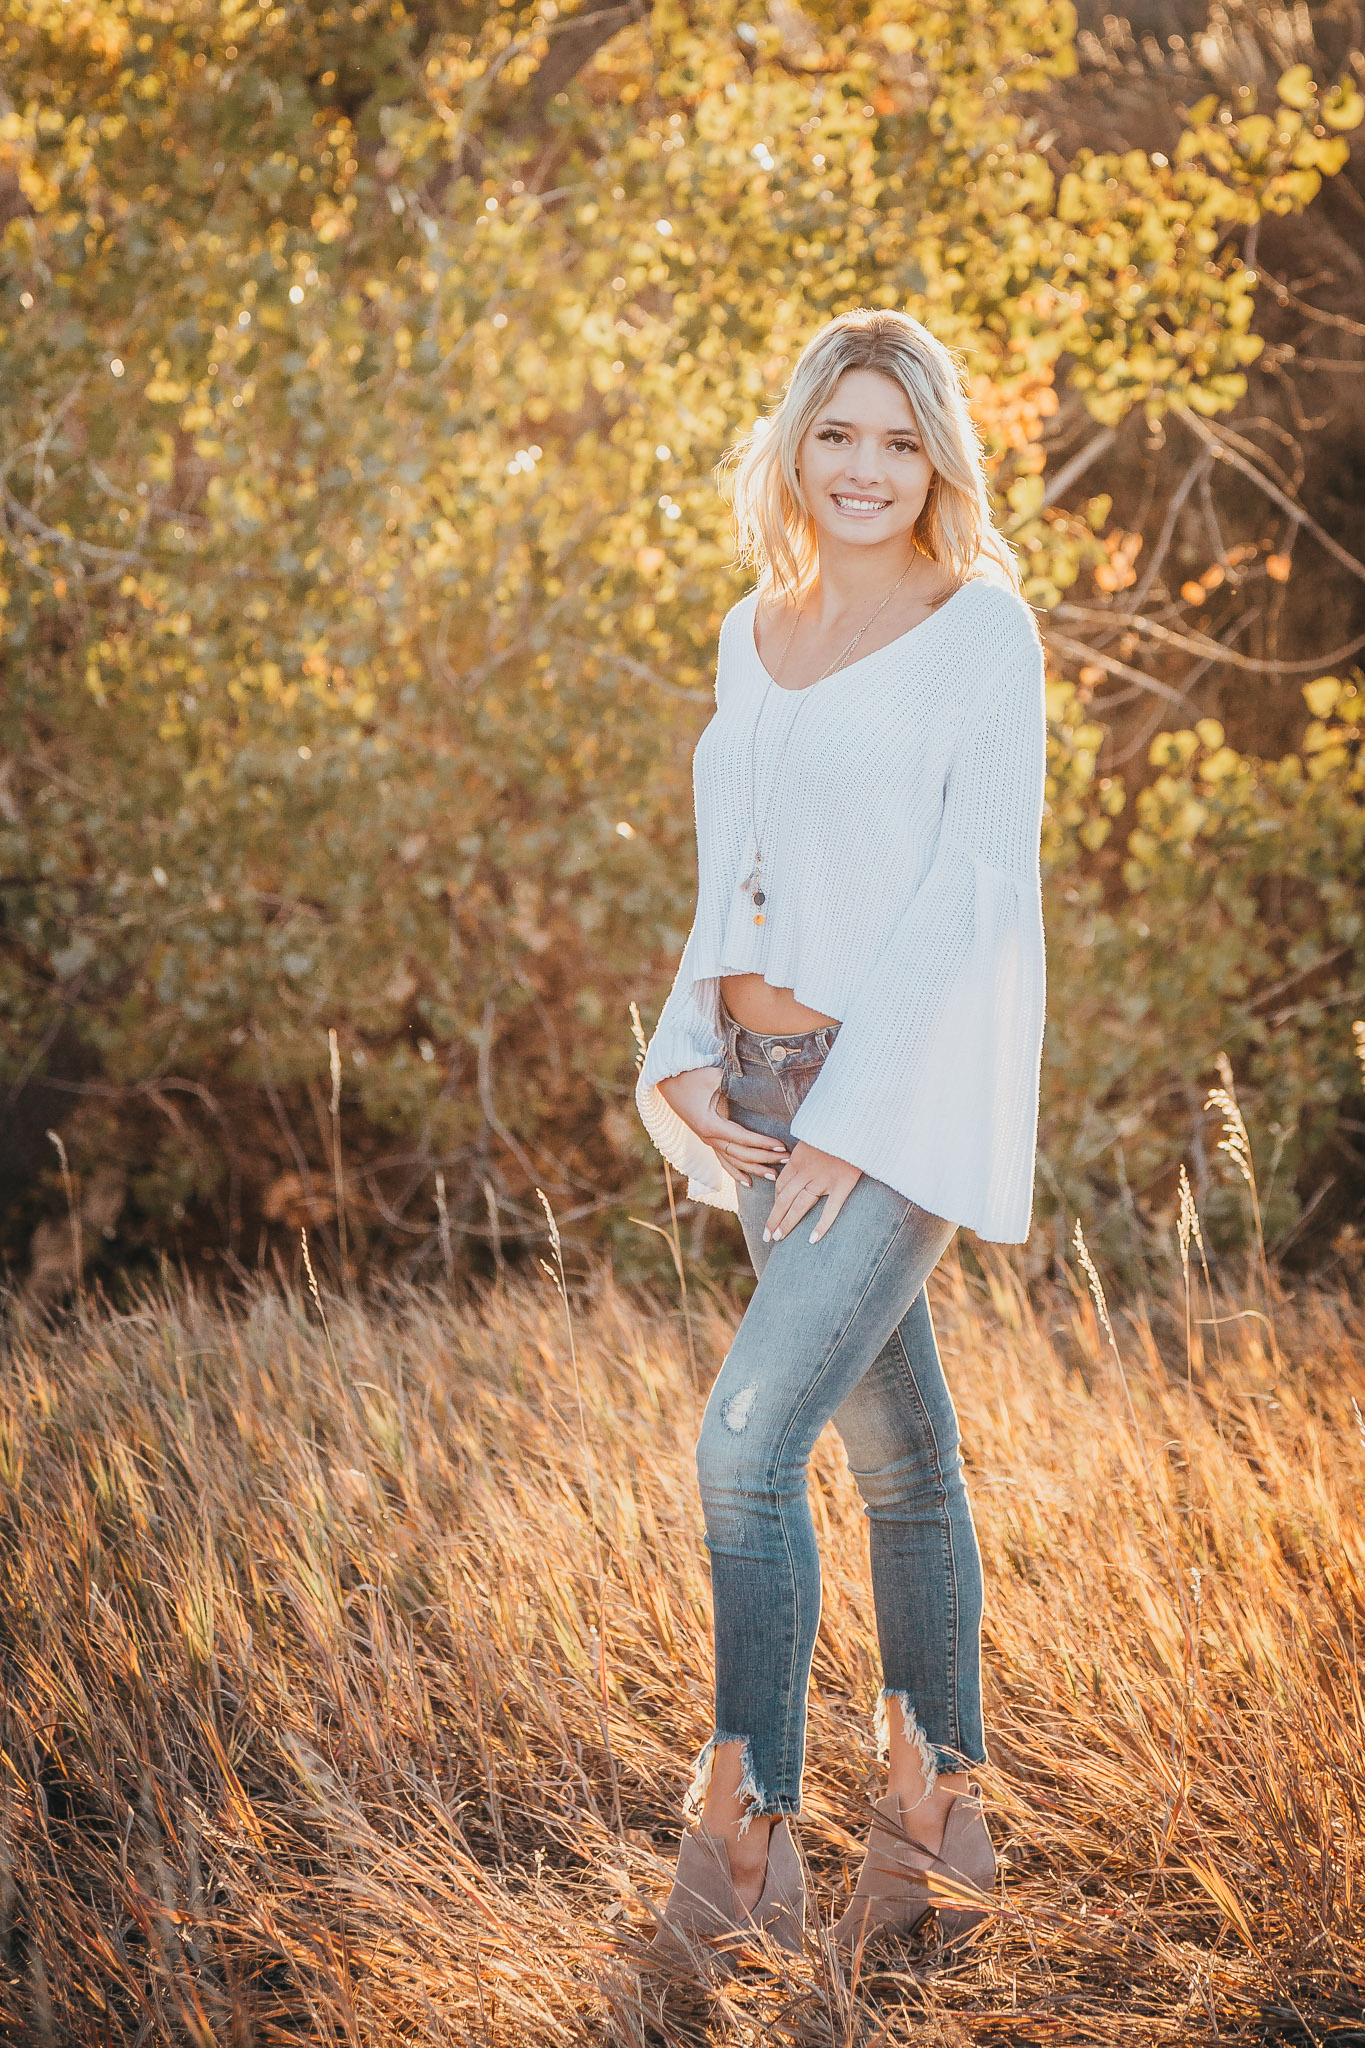 Denver senior photographer - fall golden light senior girl